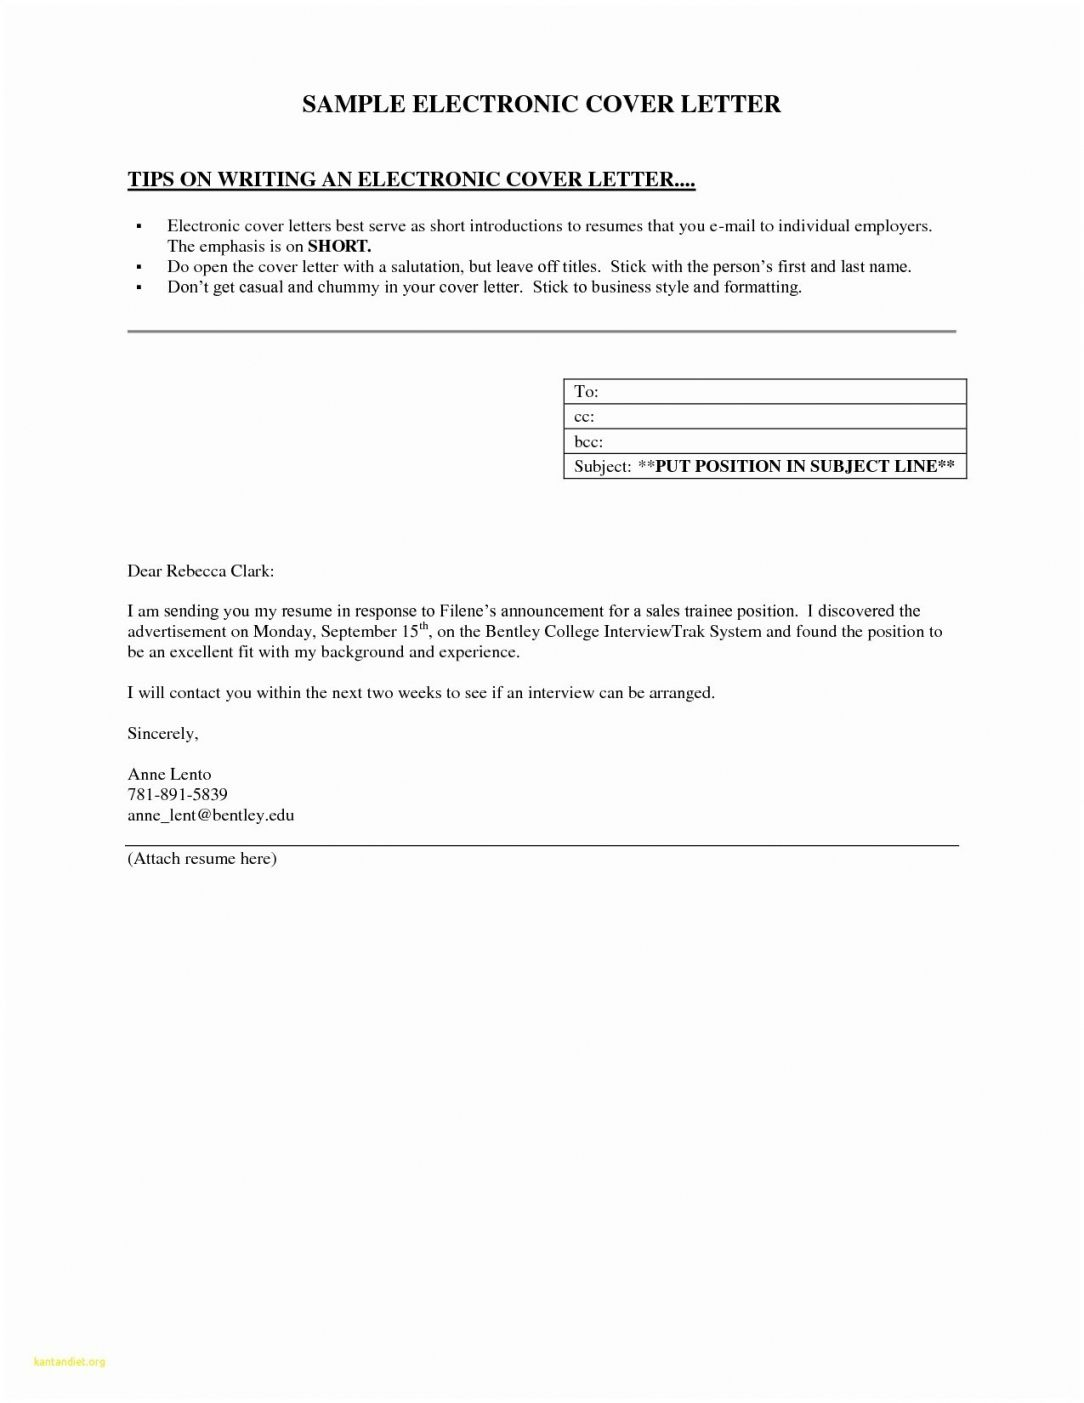 25 Email Cover Letter Cover Letter For Resume Resume Cover Letter Examples Email Cover Letter